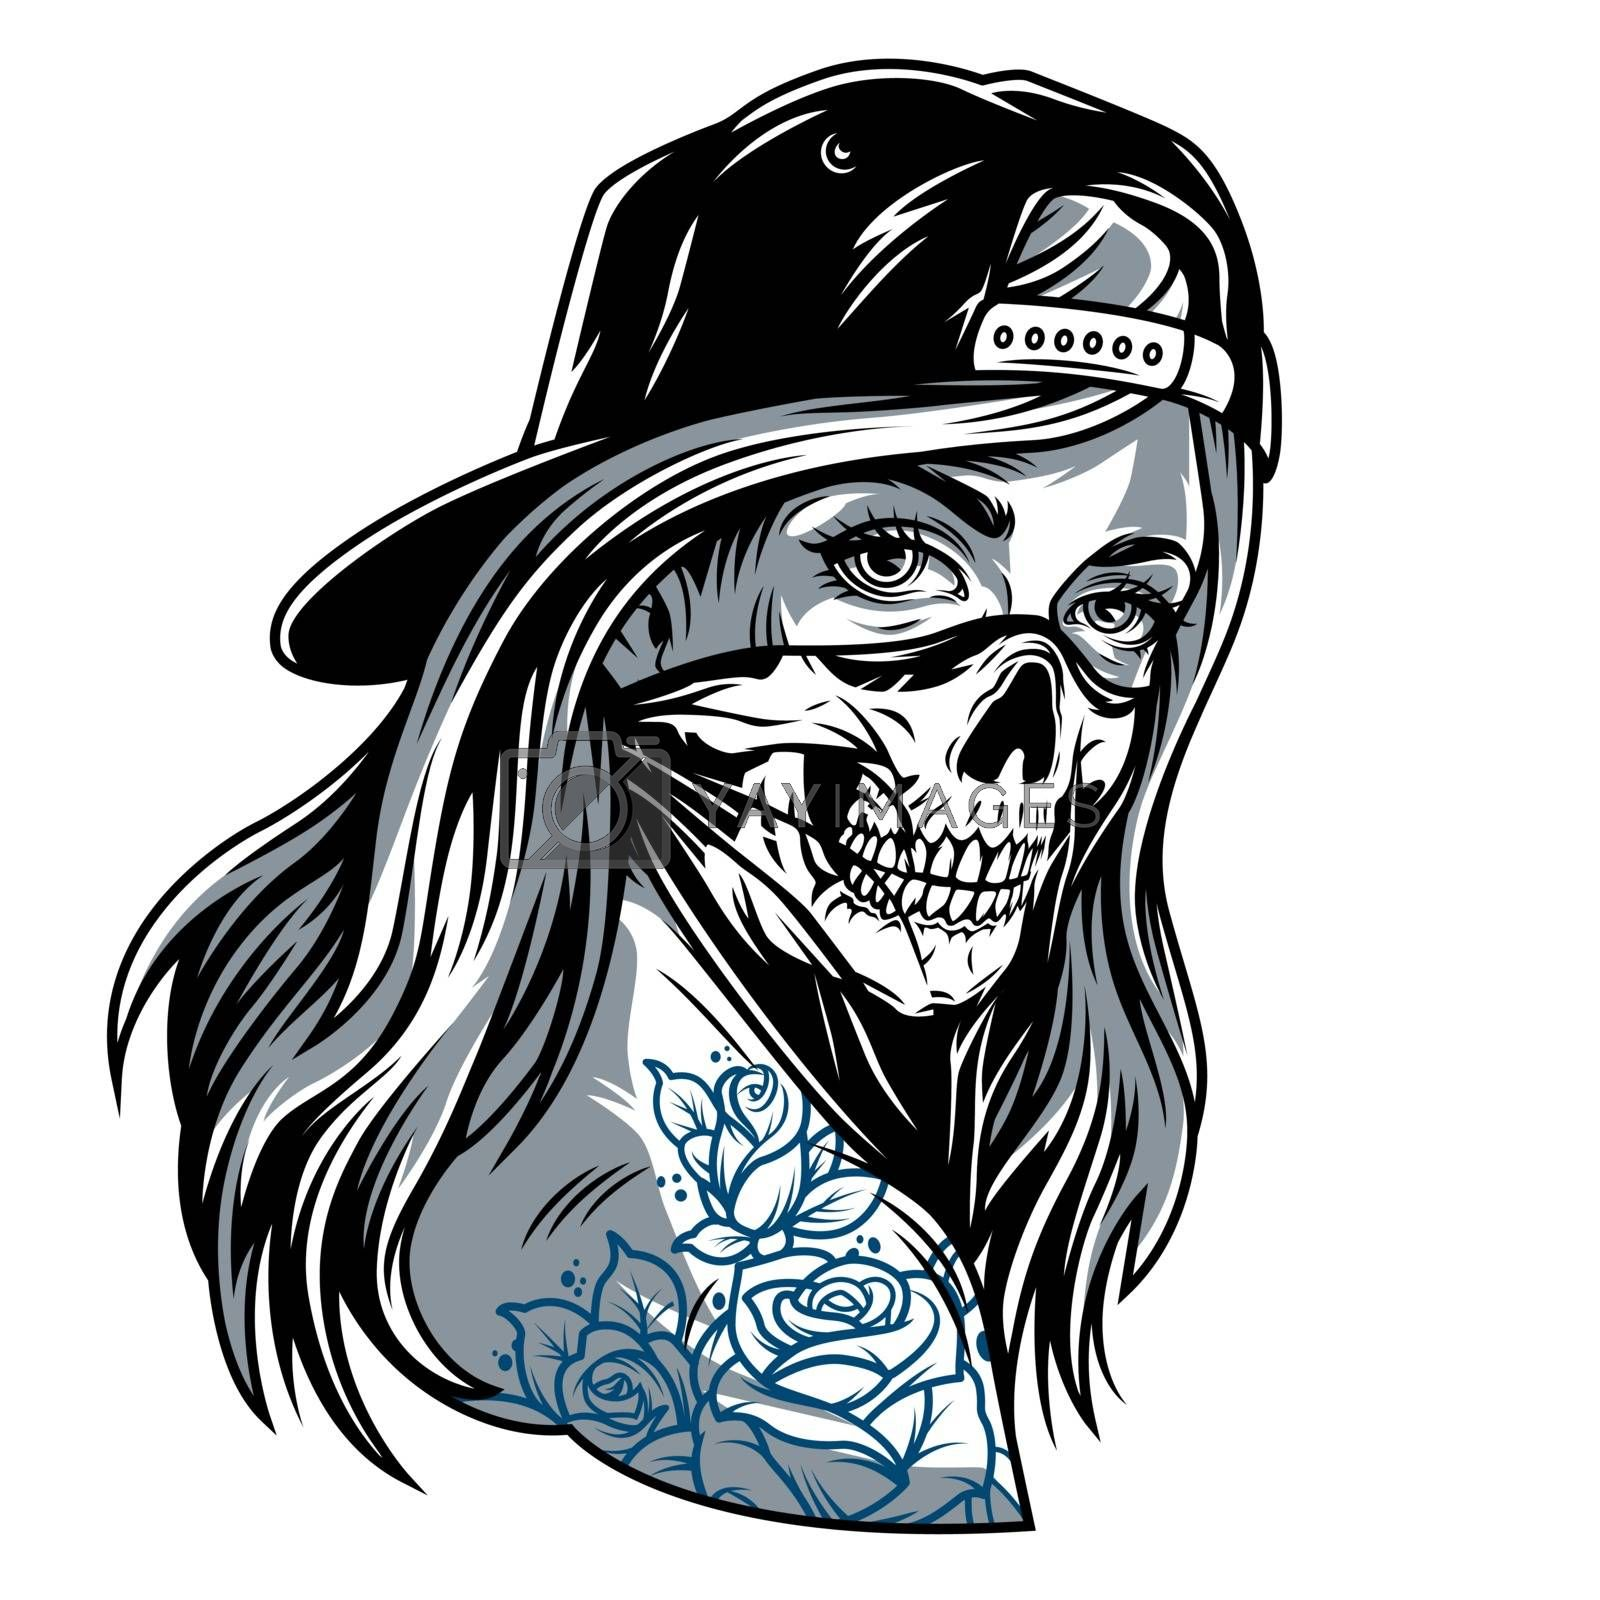 Vintage chicano gangster girl in baseball cap and skull face mask isolated vector illustration